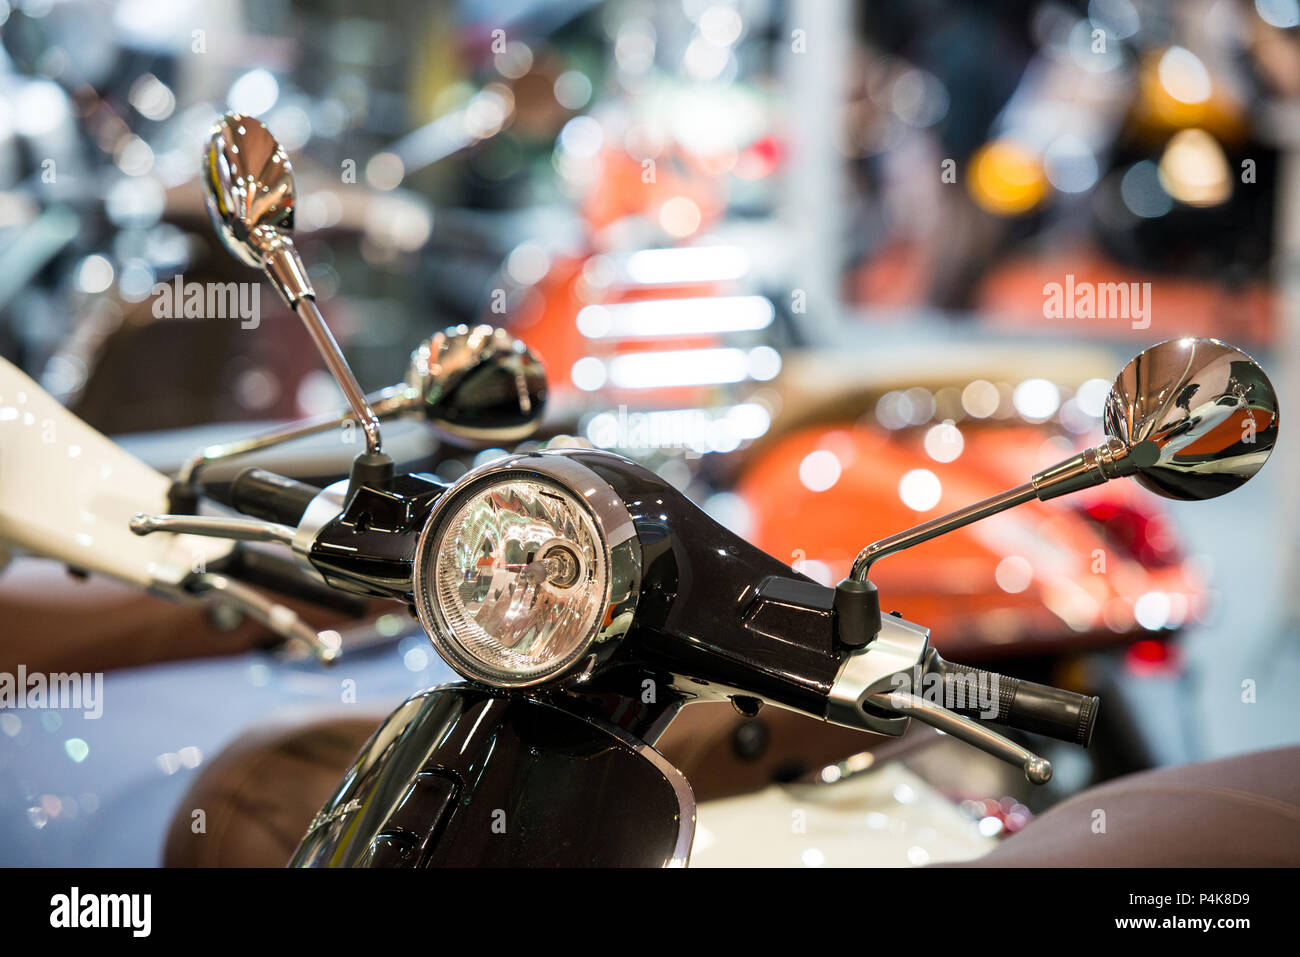 Detail of small motorcycle headlight and mirrors on handlebar - Stock Image